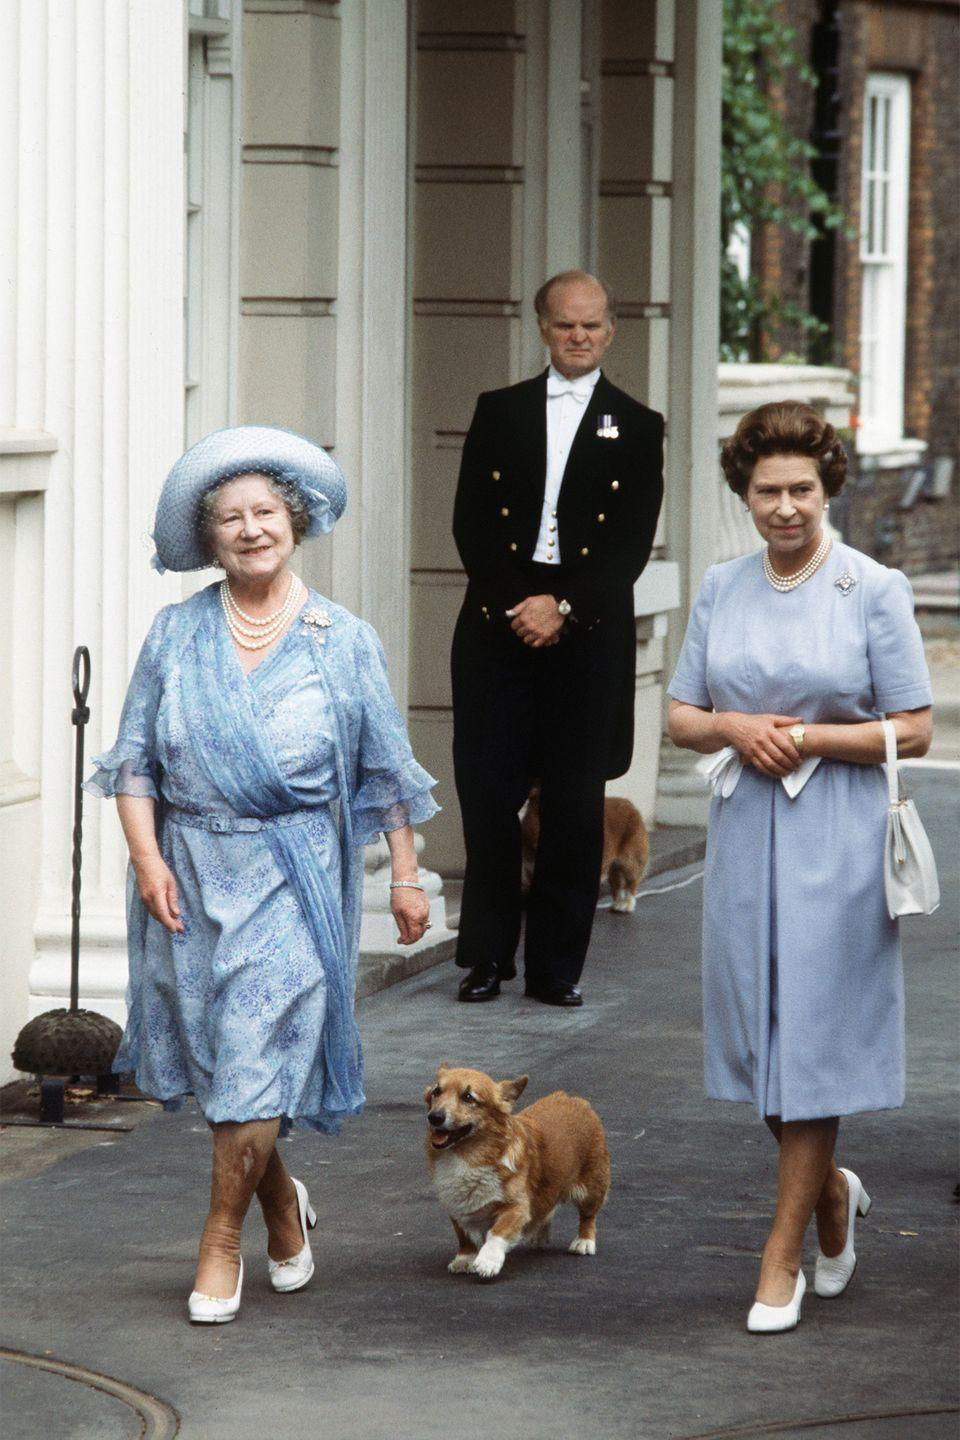 <p>The Queen Mother celebrated her 83rd birthday with her daughter Queen Elizabeth outside of Clarence House with her adorable corgi. The mother-daughter duo looked in-sync with their similar blue dresses and white heels.</p>